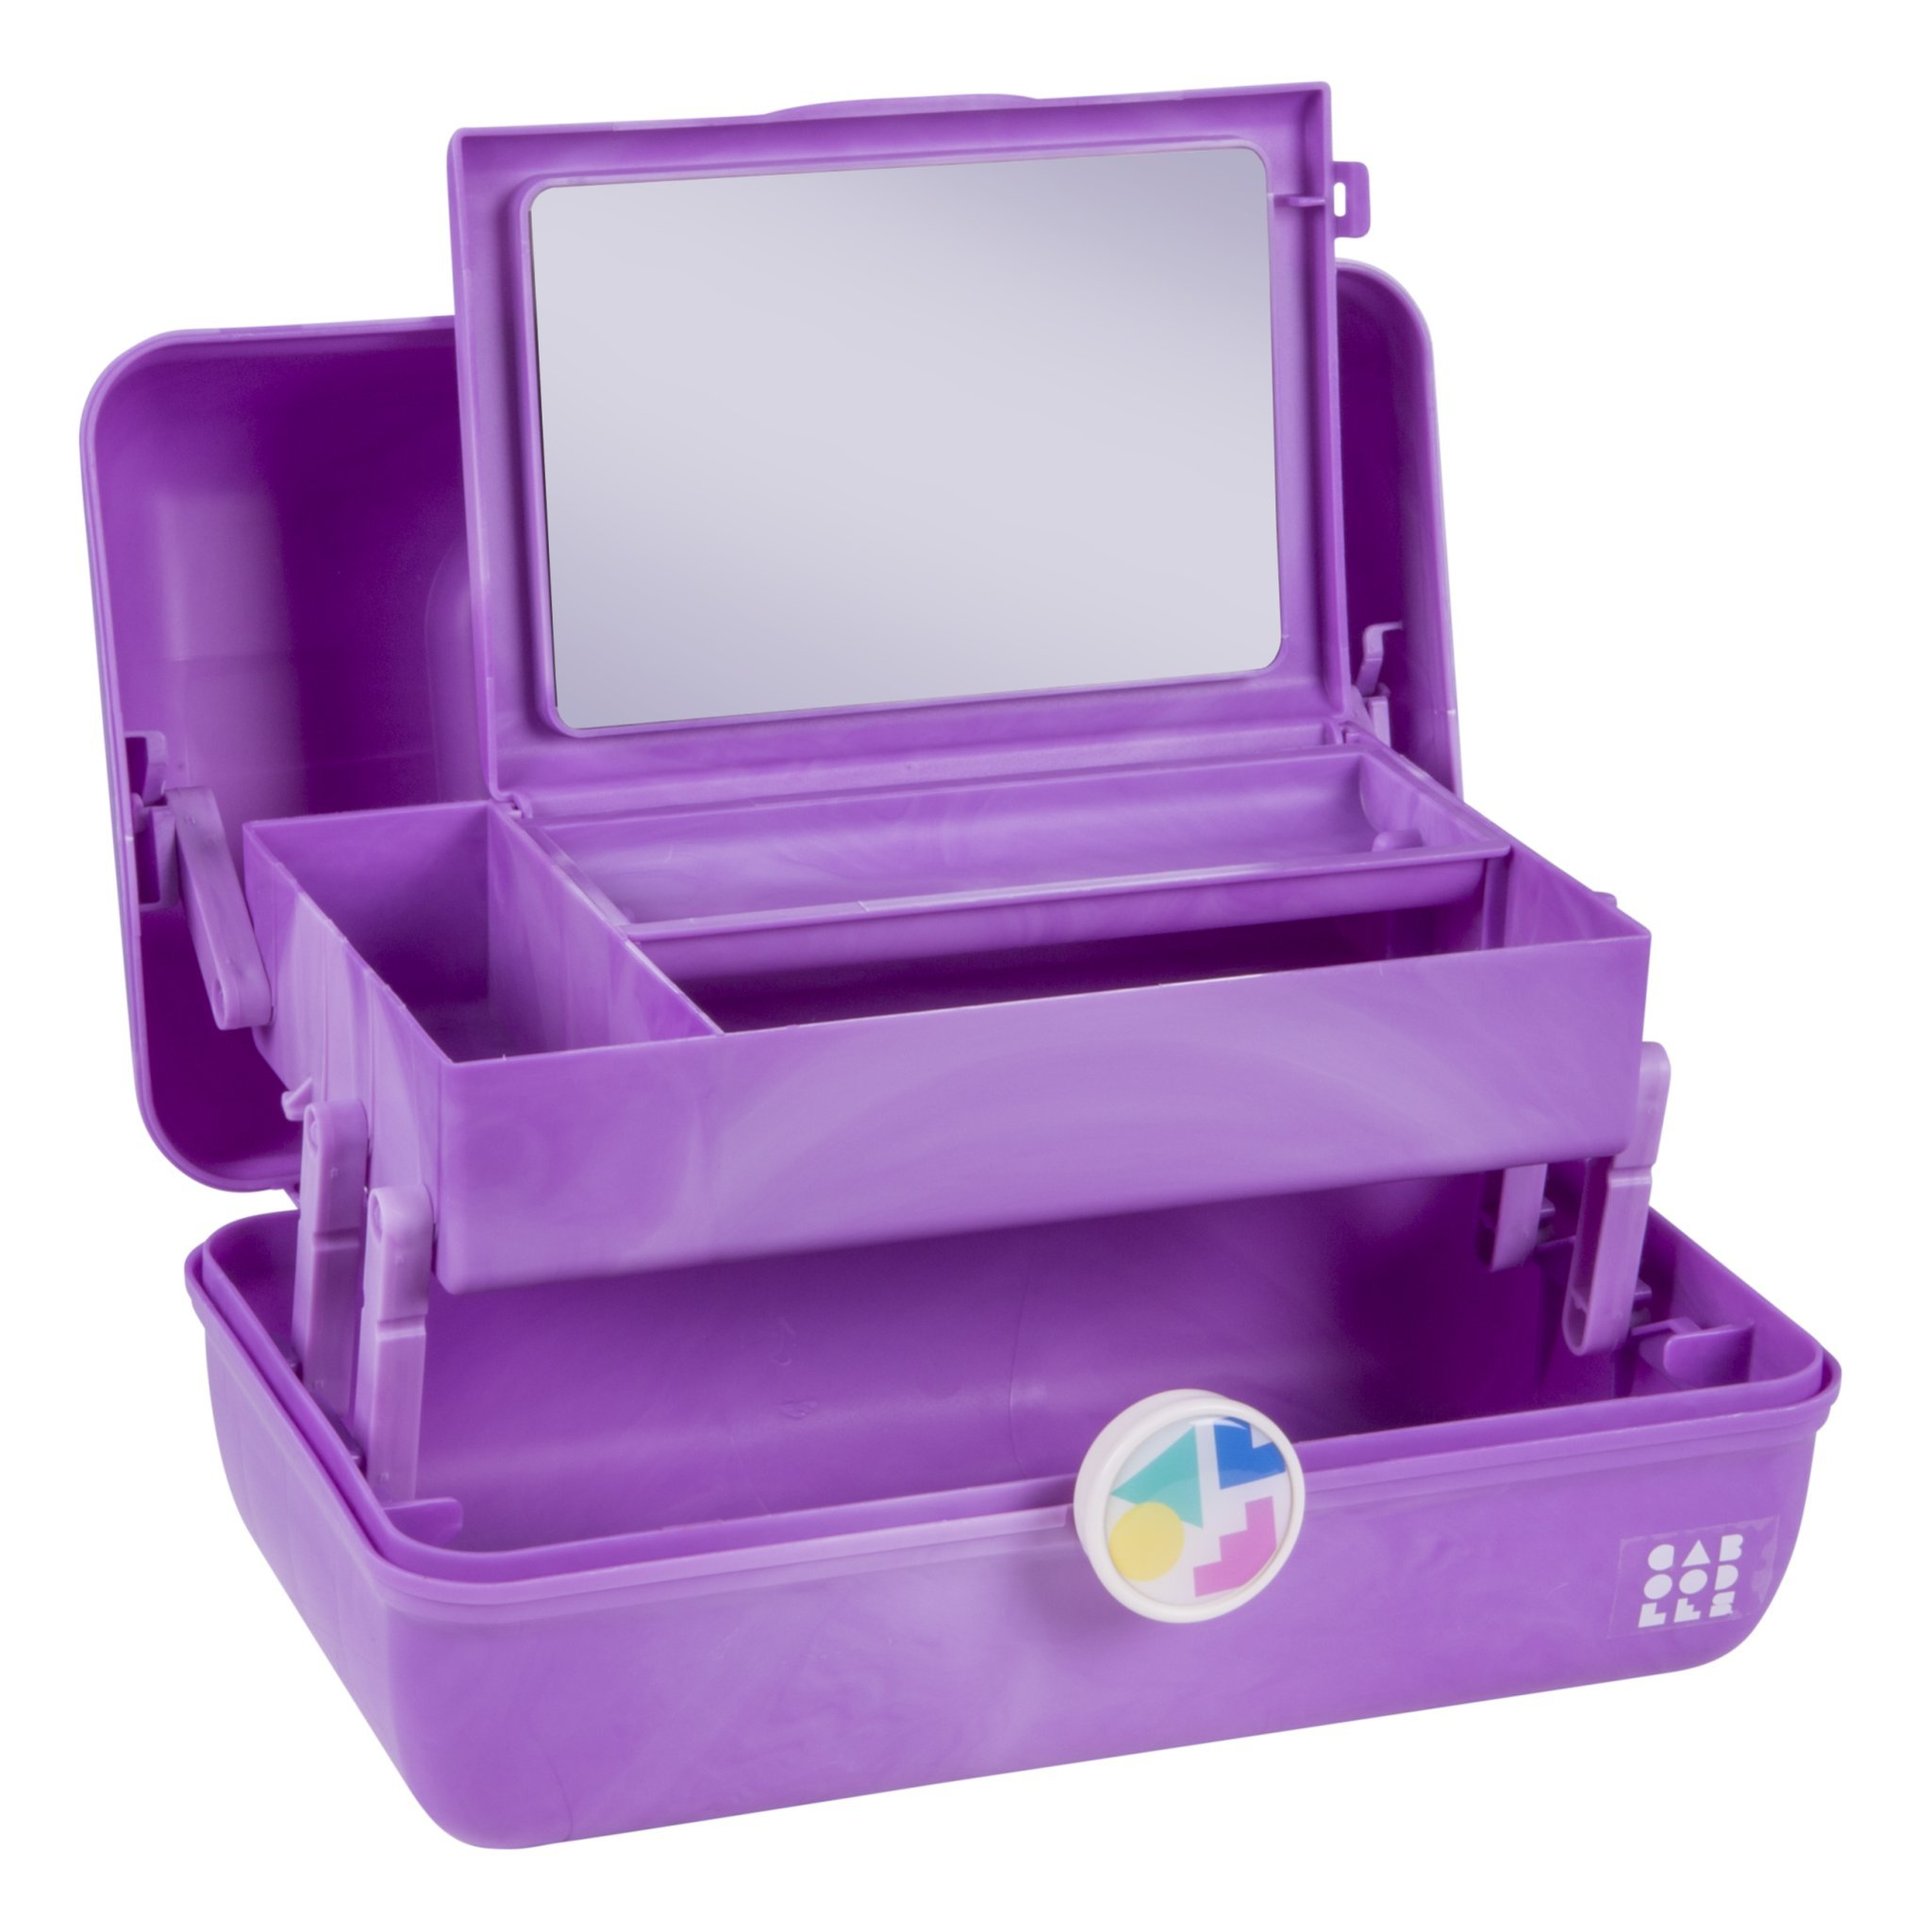 Caboodles On-the-Go Girl Purple Marble Vintage Case, 1 Pound by Caboodles (Image #2)